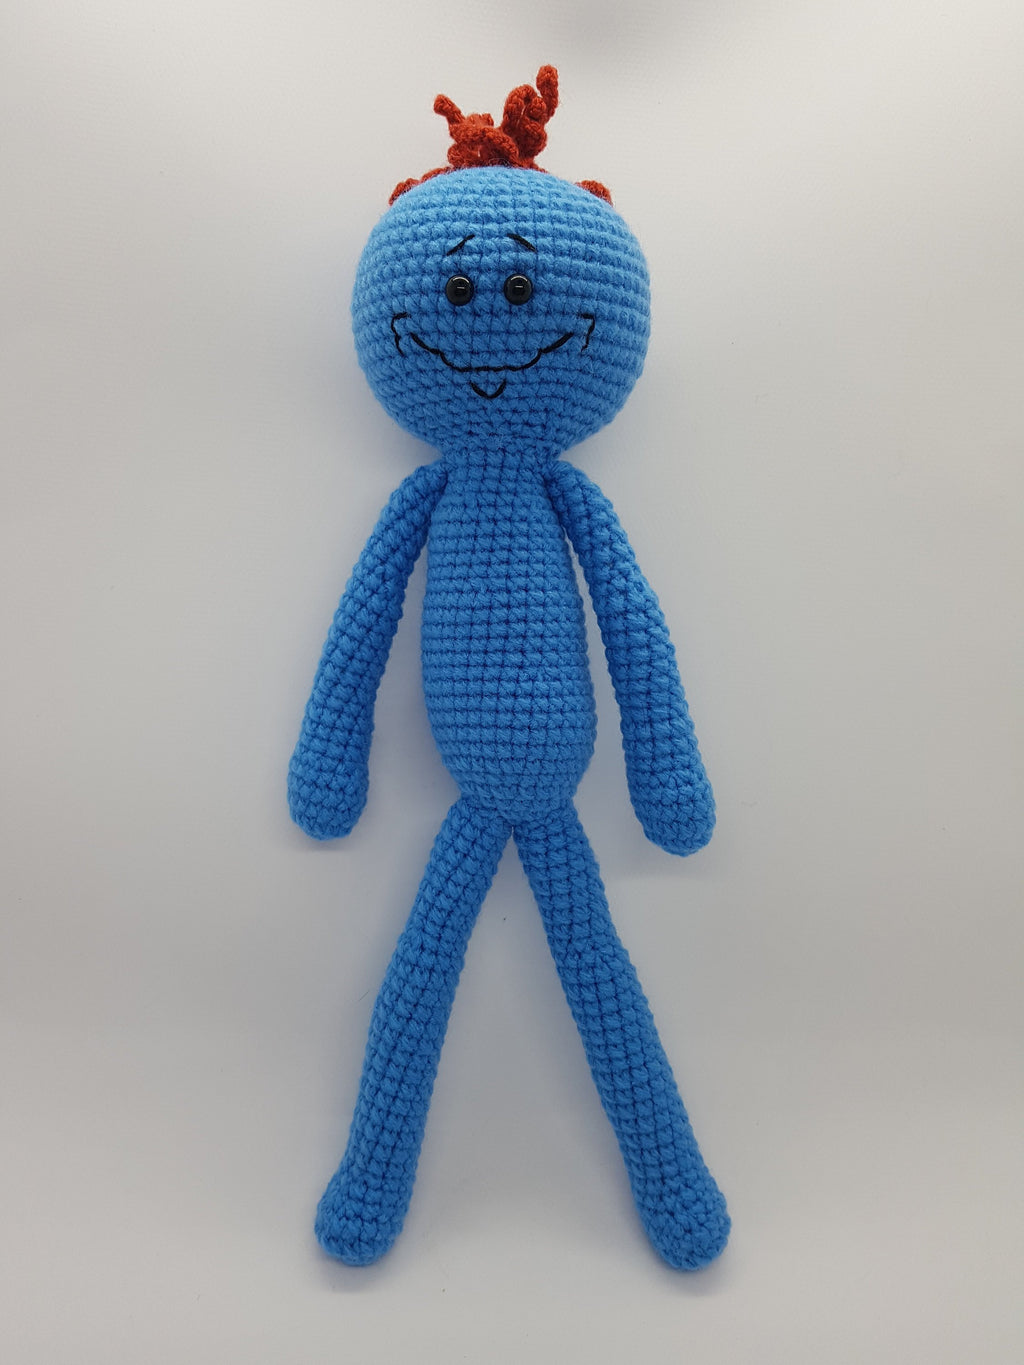 mr meeseeks from rick and morty amigurumi